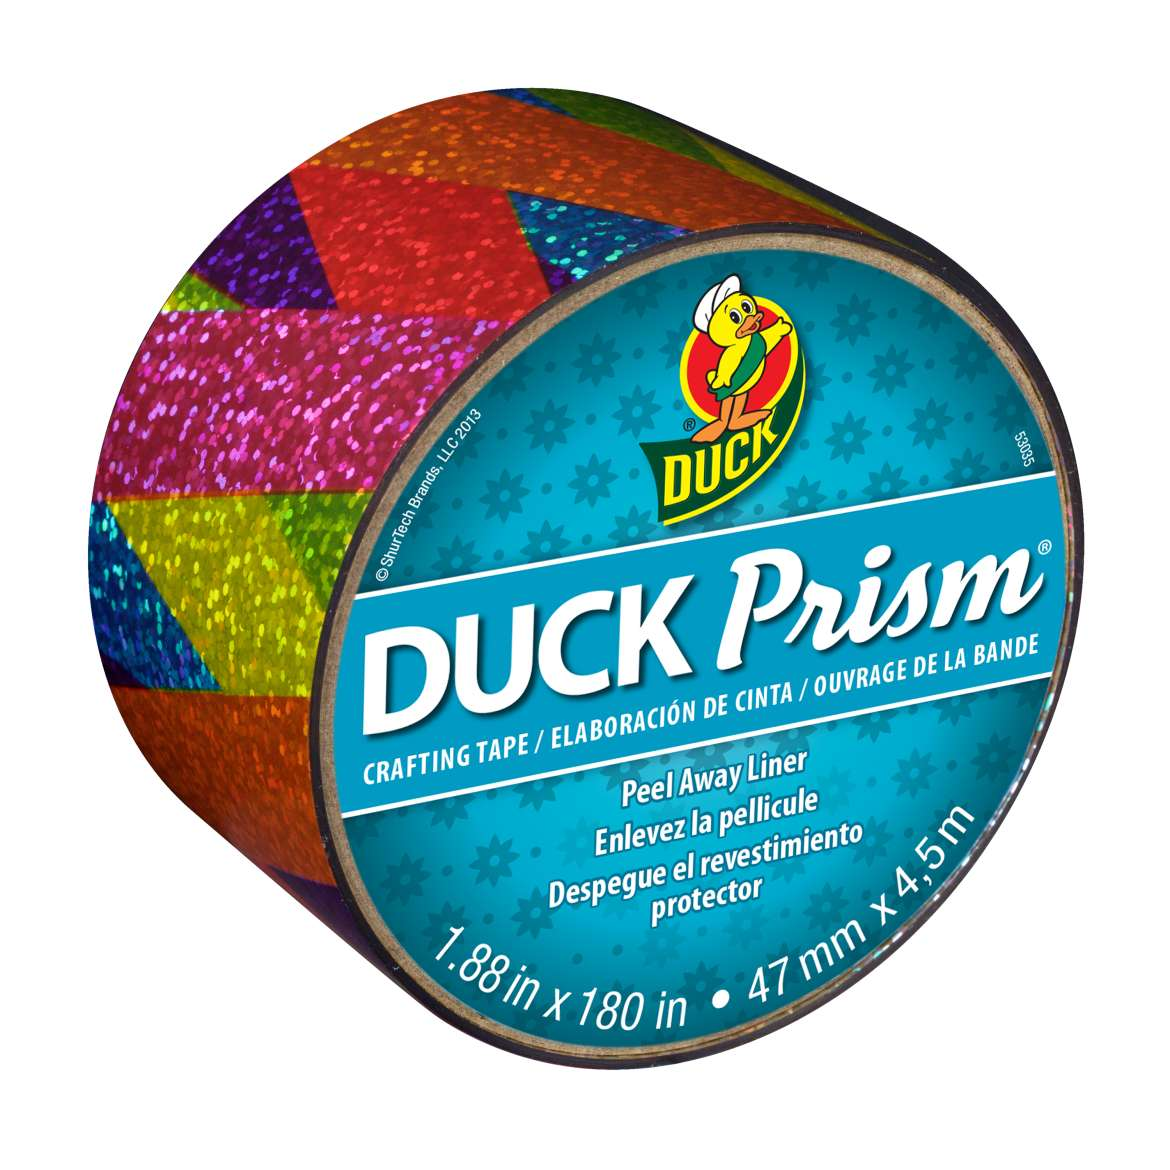 Duck Prism® Crafting Tape Image